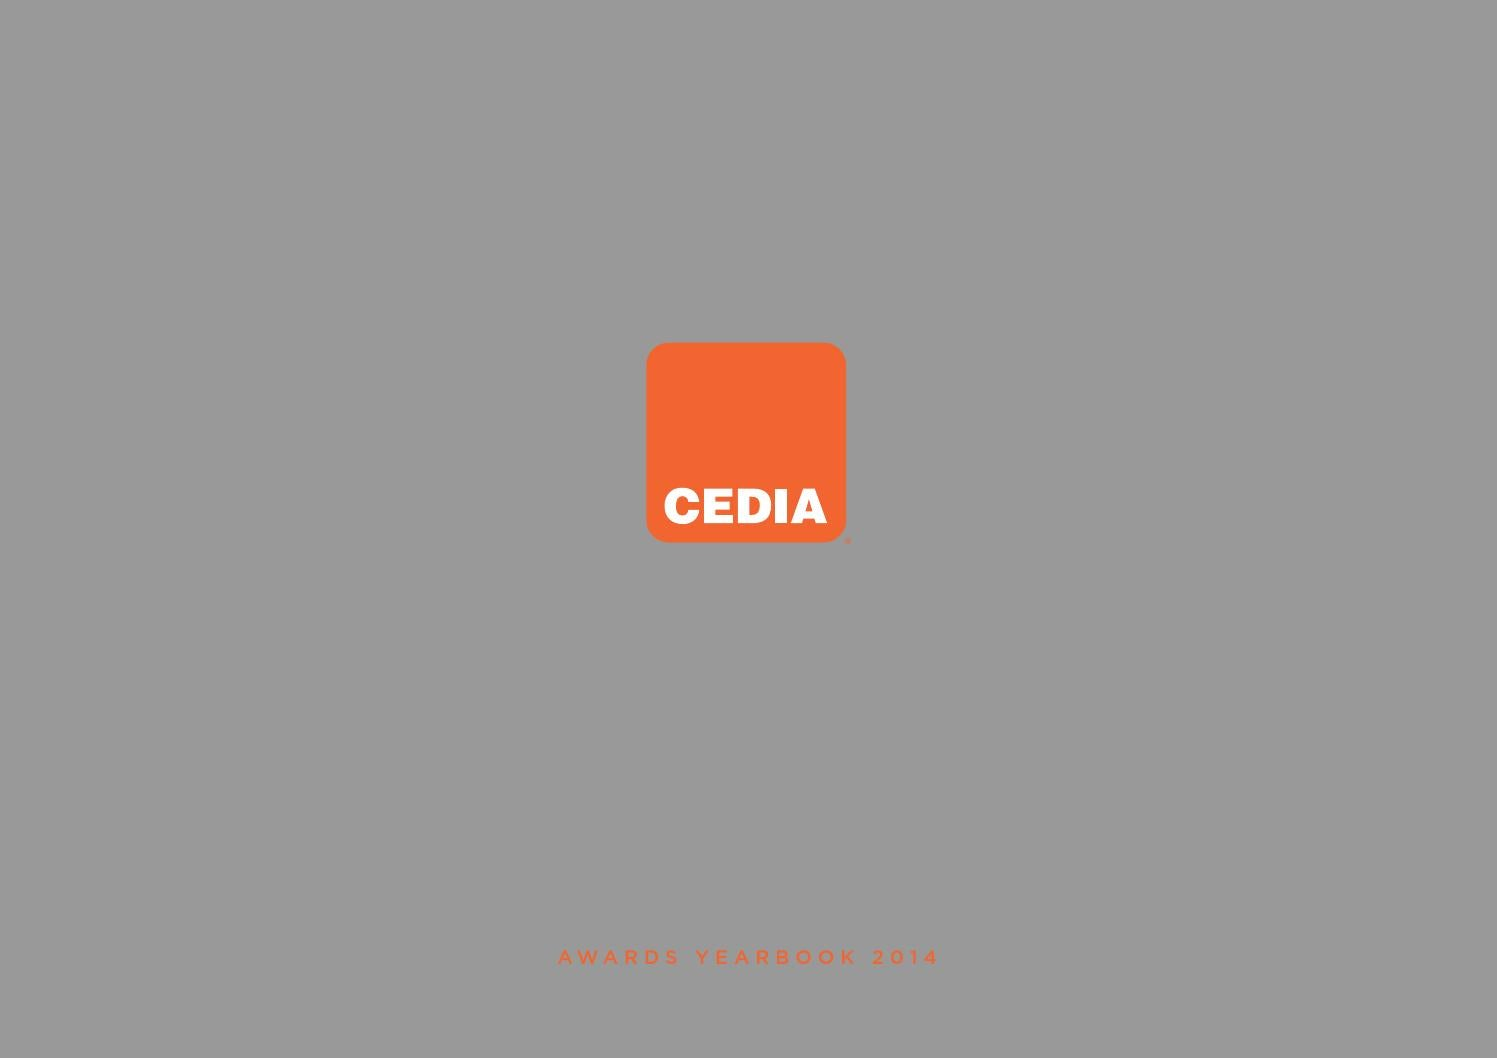 Cedia Awards 2014 Yearbook By Emea Issuu The Rako Wireless Dimming Controls In Detail Ceiling Inline And